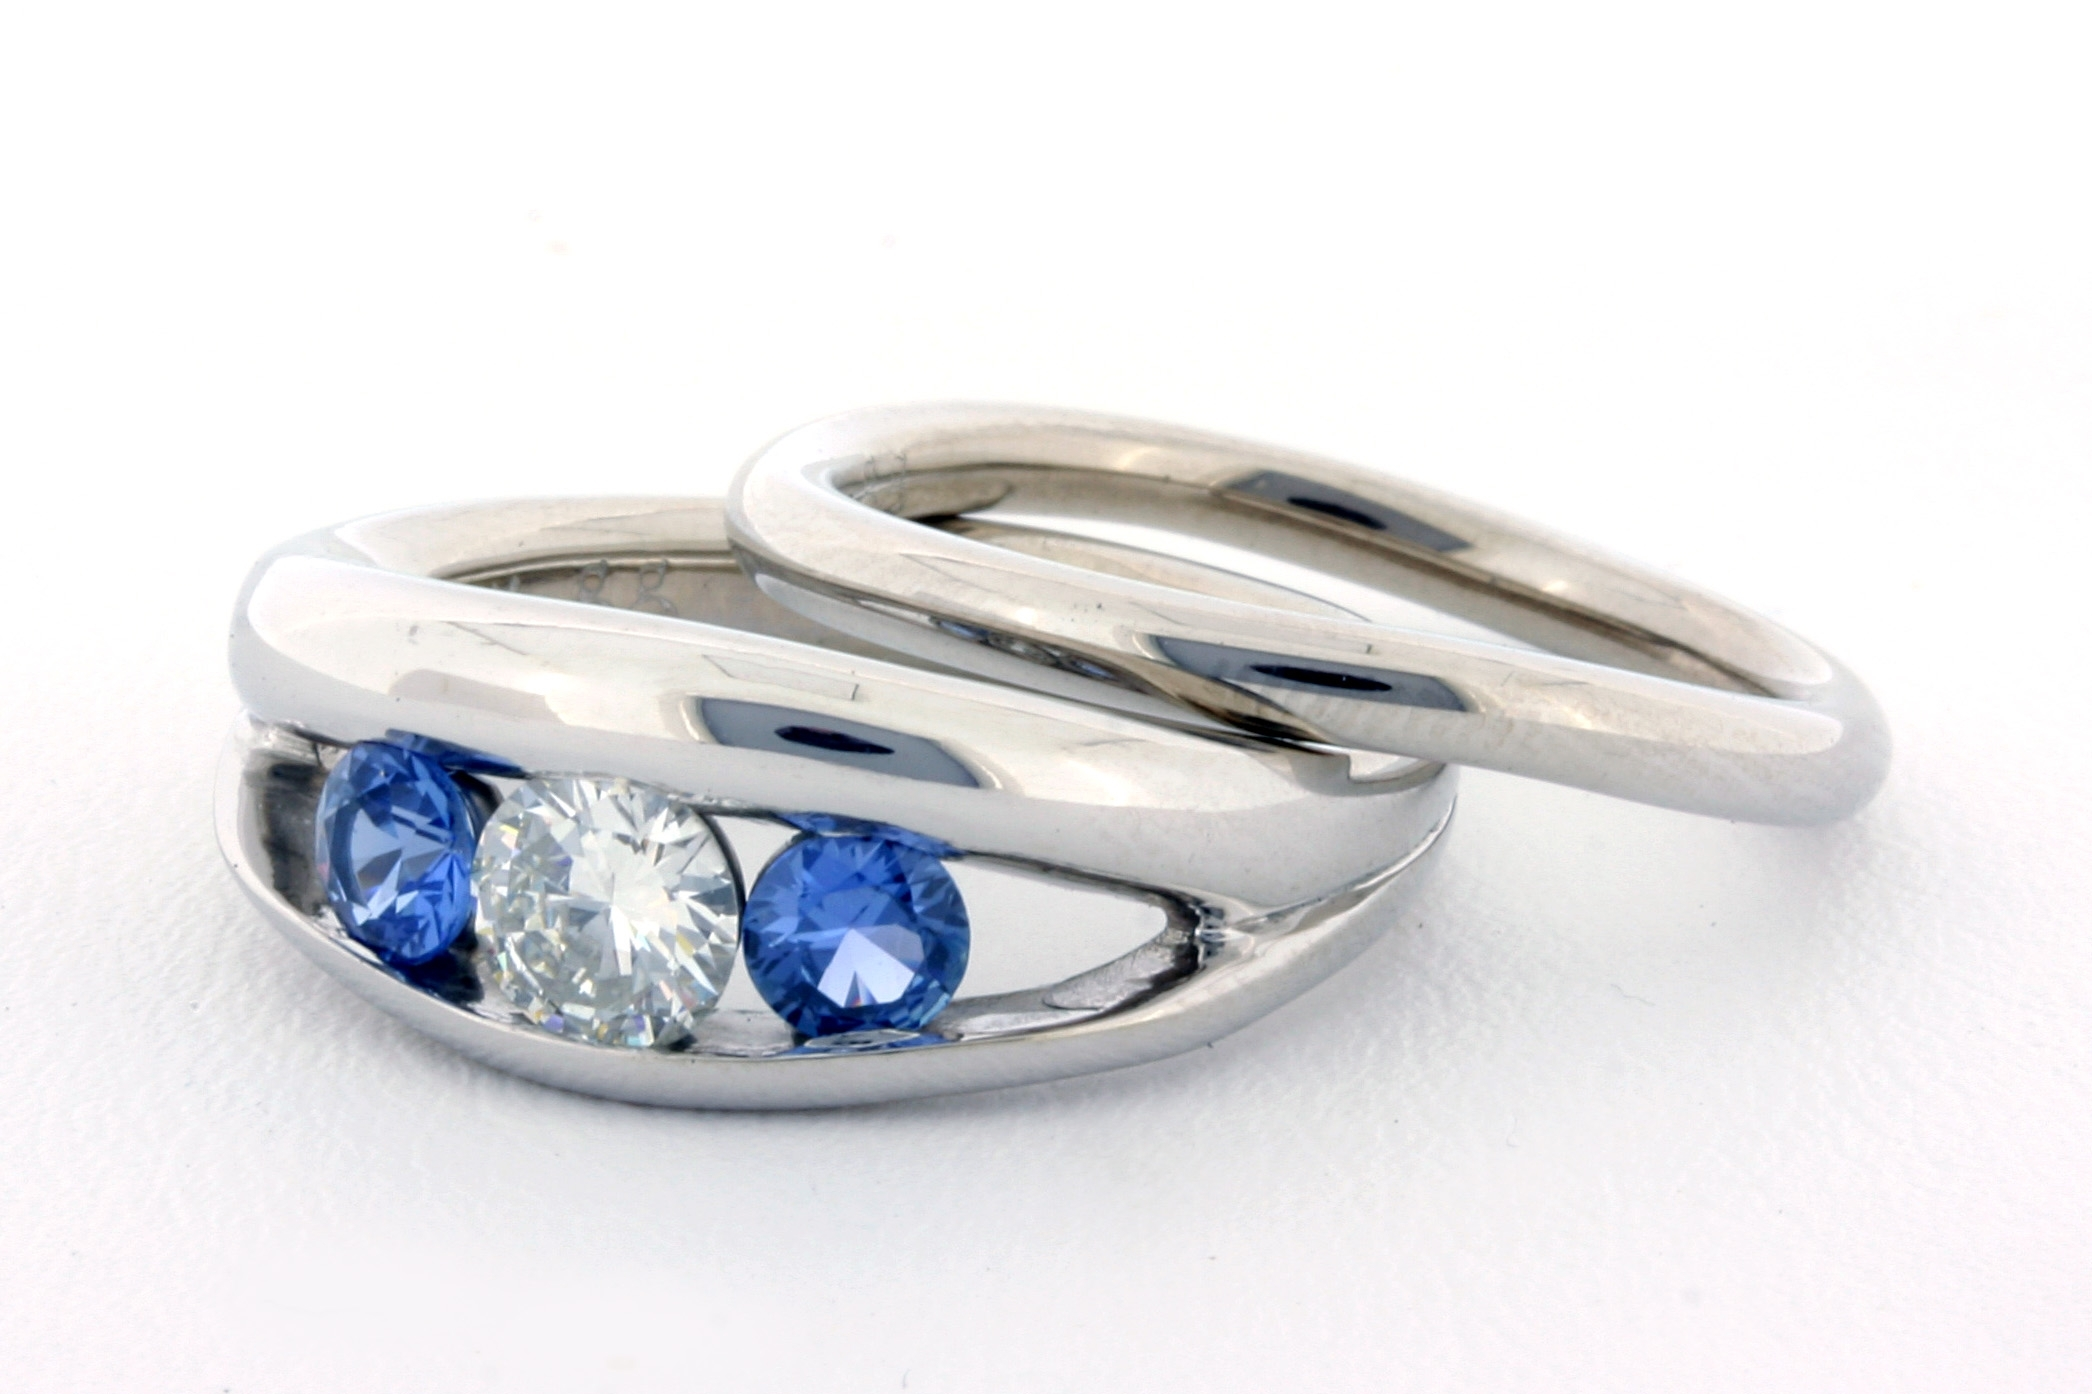 Custom Diamond And Yogo Sapphire Engagement Ring And Wedding Band Throughout Latest Chevron Sapphire Rings (View 4 of 15)